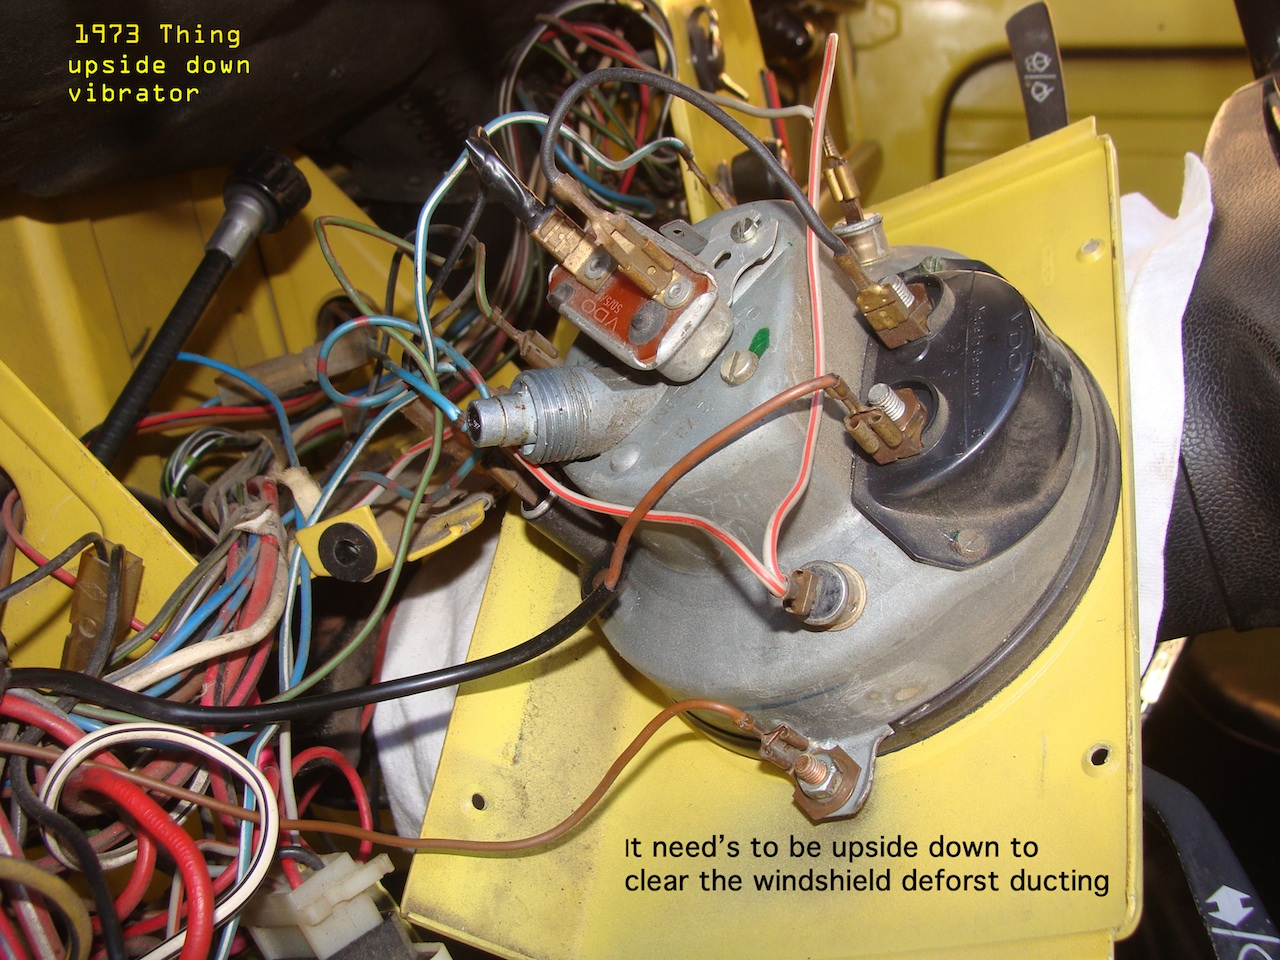 ... VW Beetle Wiring Diagram image may have been reduced in size click  image to view fullscreen